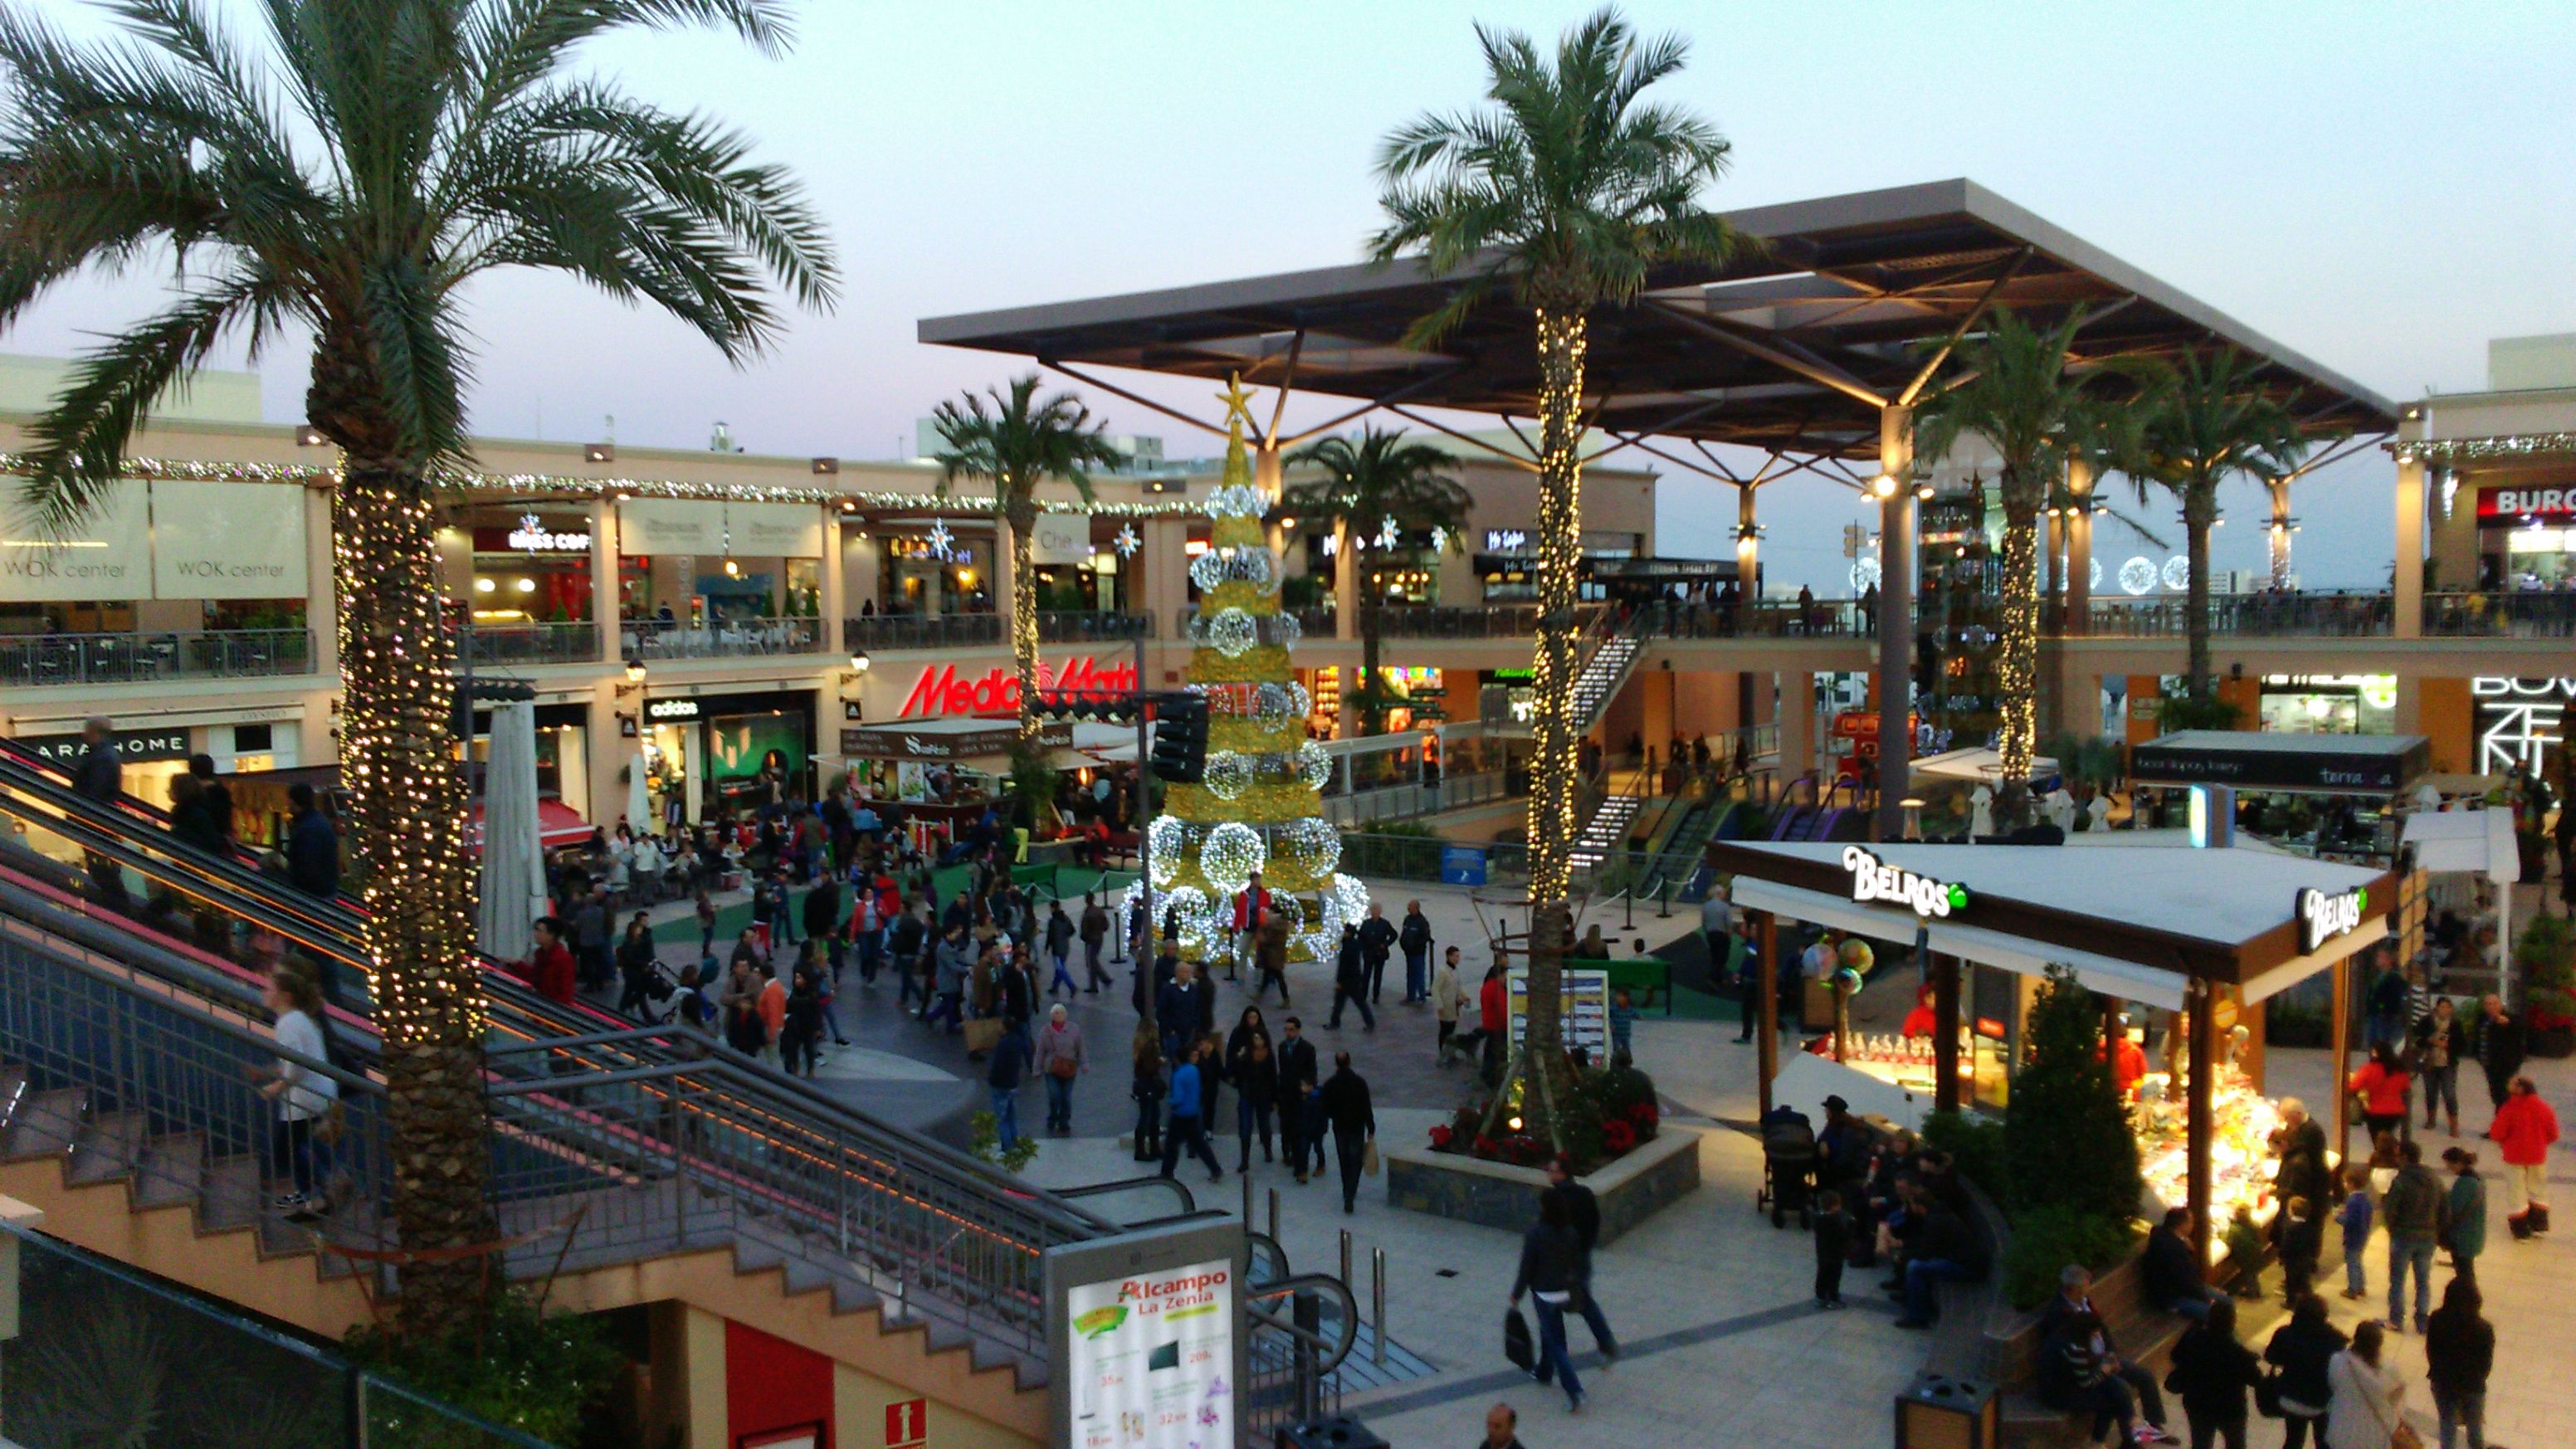 Pionero compañera de clases Licuar  La Zenia is a large shopping centre in Cabo Roig with high end shops such  as Zara, Adidas and Swarovski. | Spanien